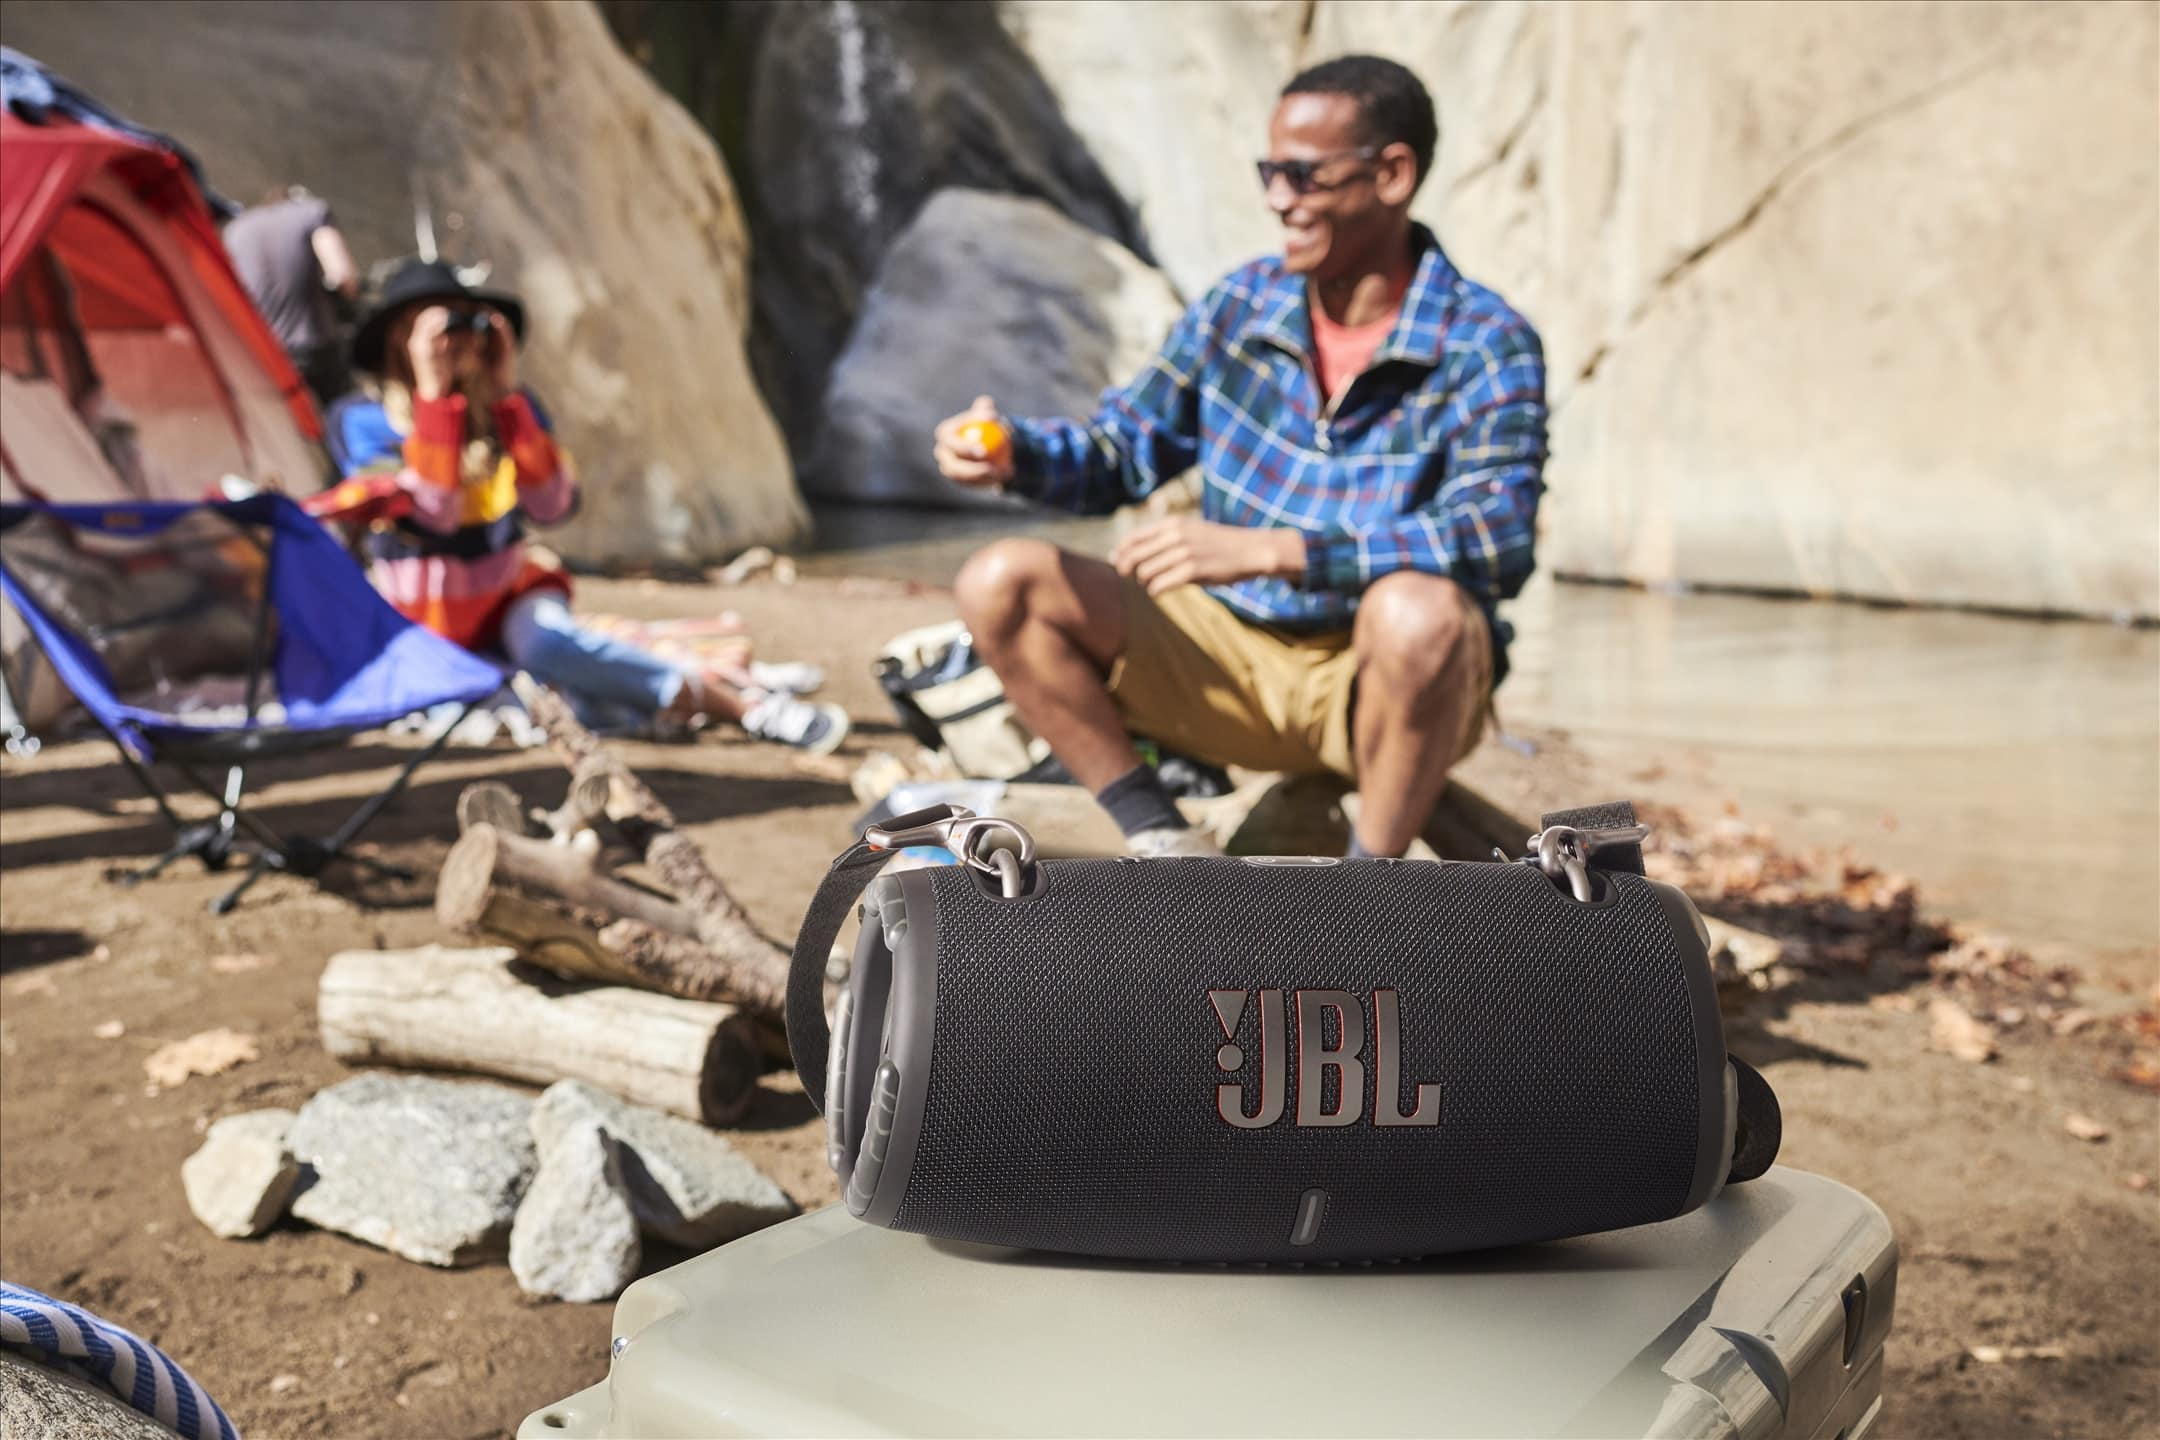 Bass that you can hear and see – JBL Xtreme 3 Review